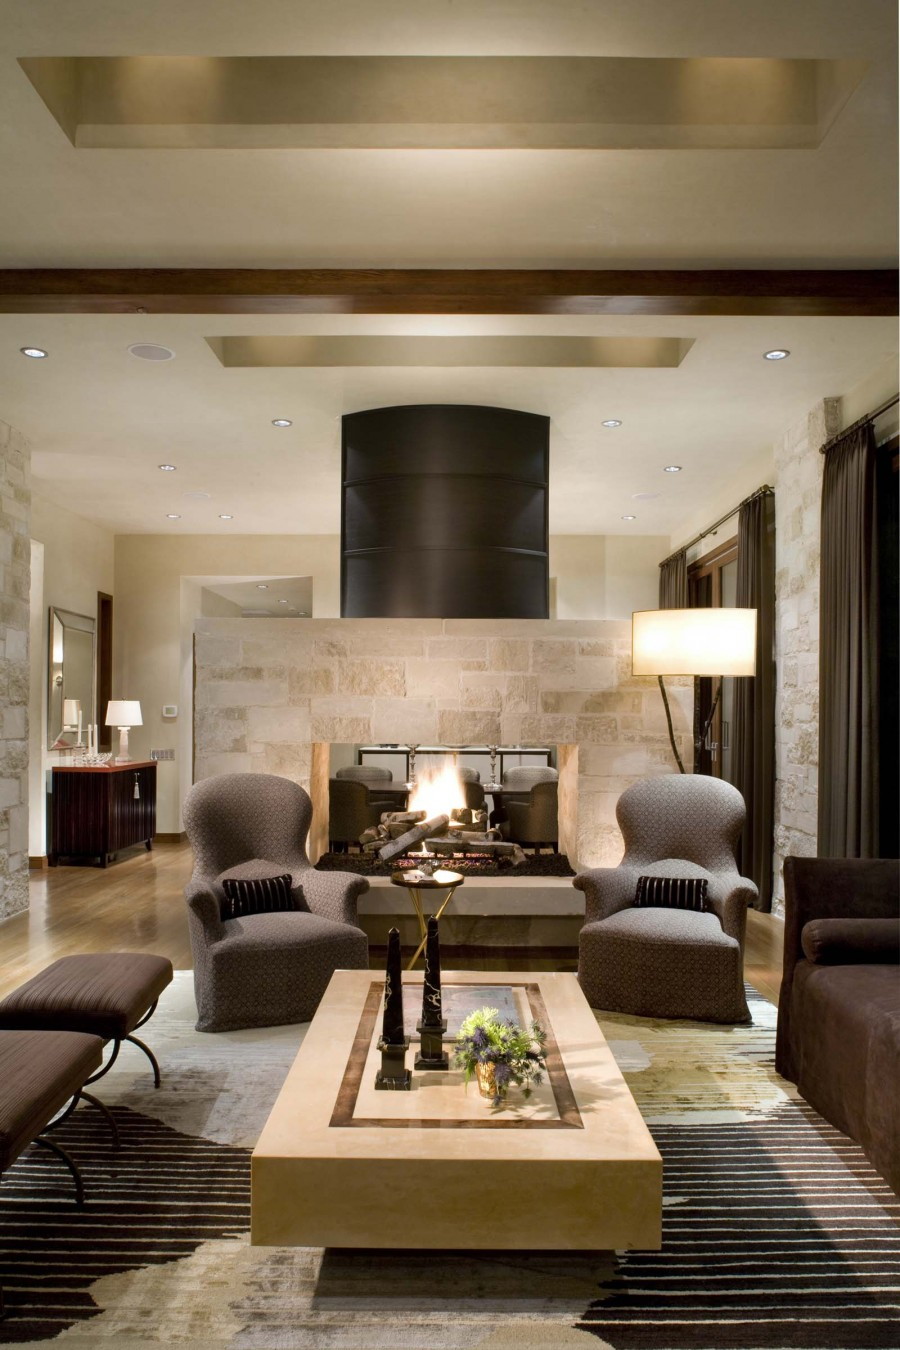 16 fabulous earth tones living room designs decoholic for Internal design living room